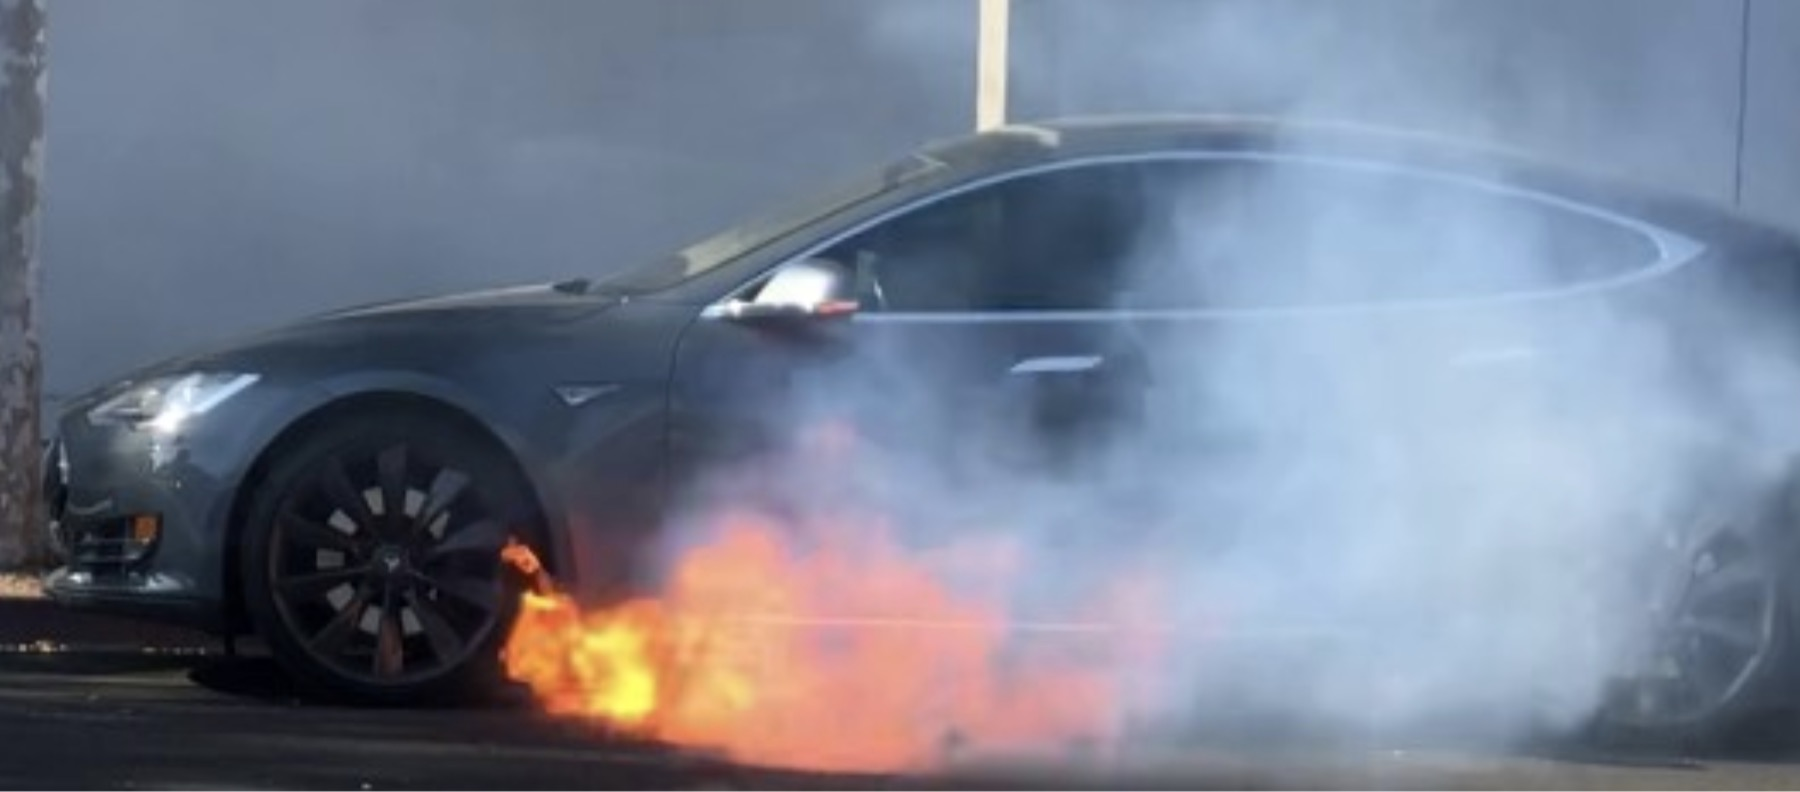 Tesla says battery fire without crash in LA was 'extraordinarily unusual occurrence', still investigating the cause